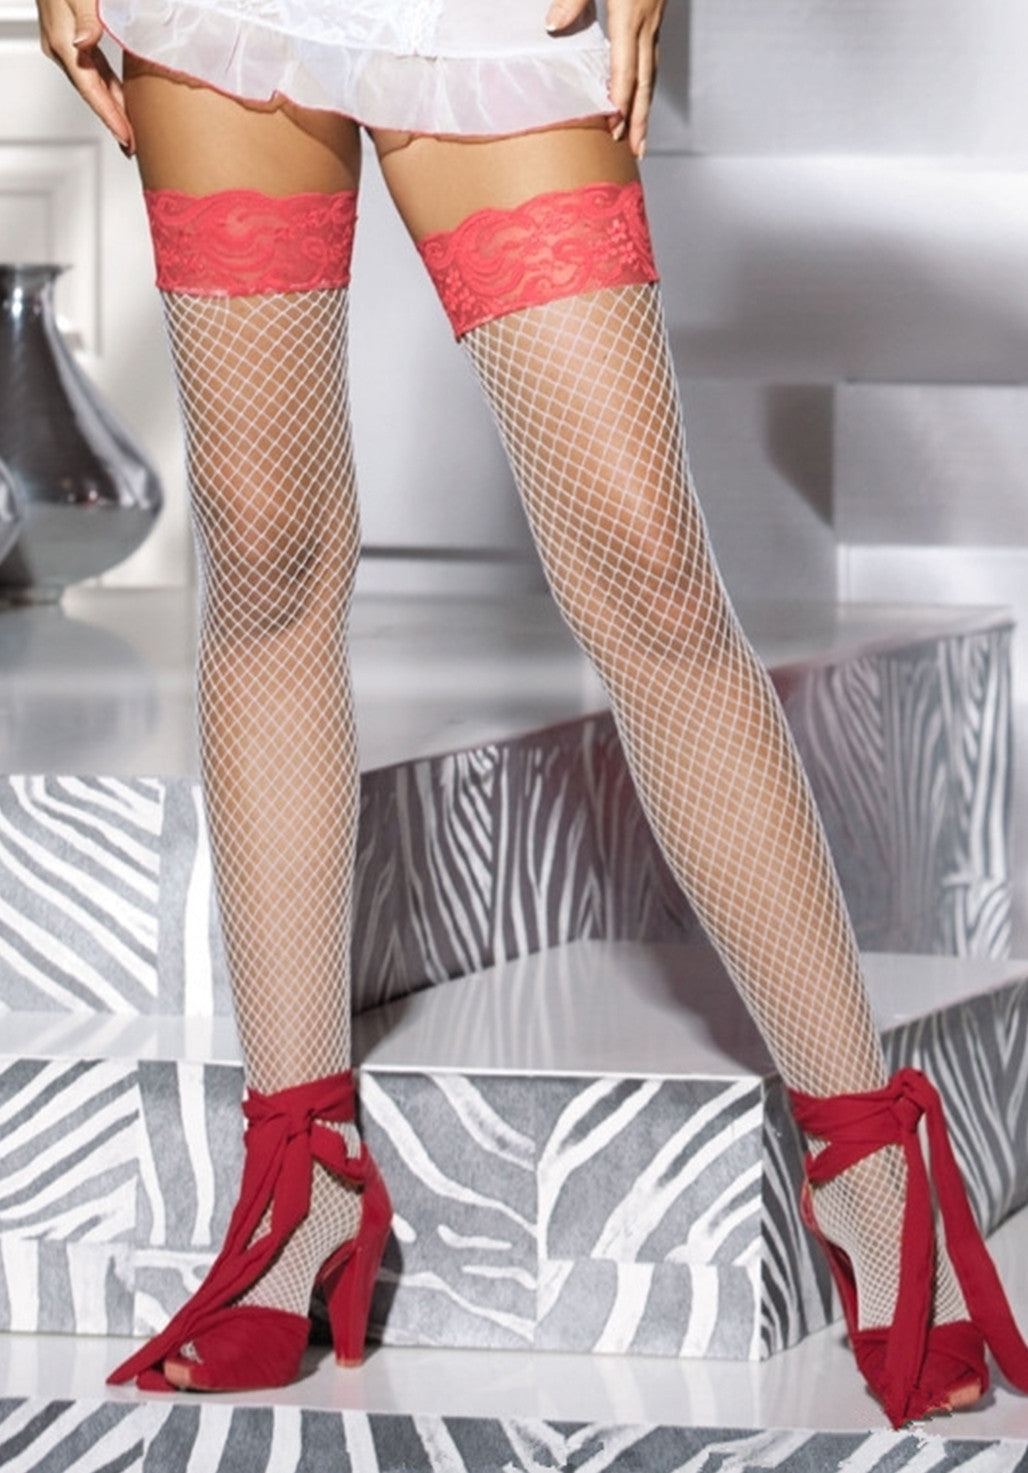 Ooh La La - Fish Net Stay-Up Stockings in White and Pink